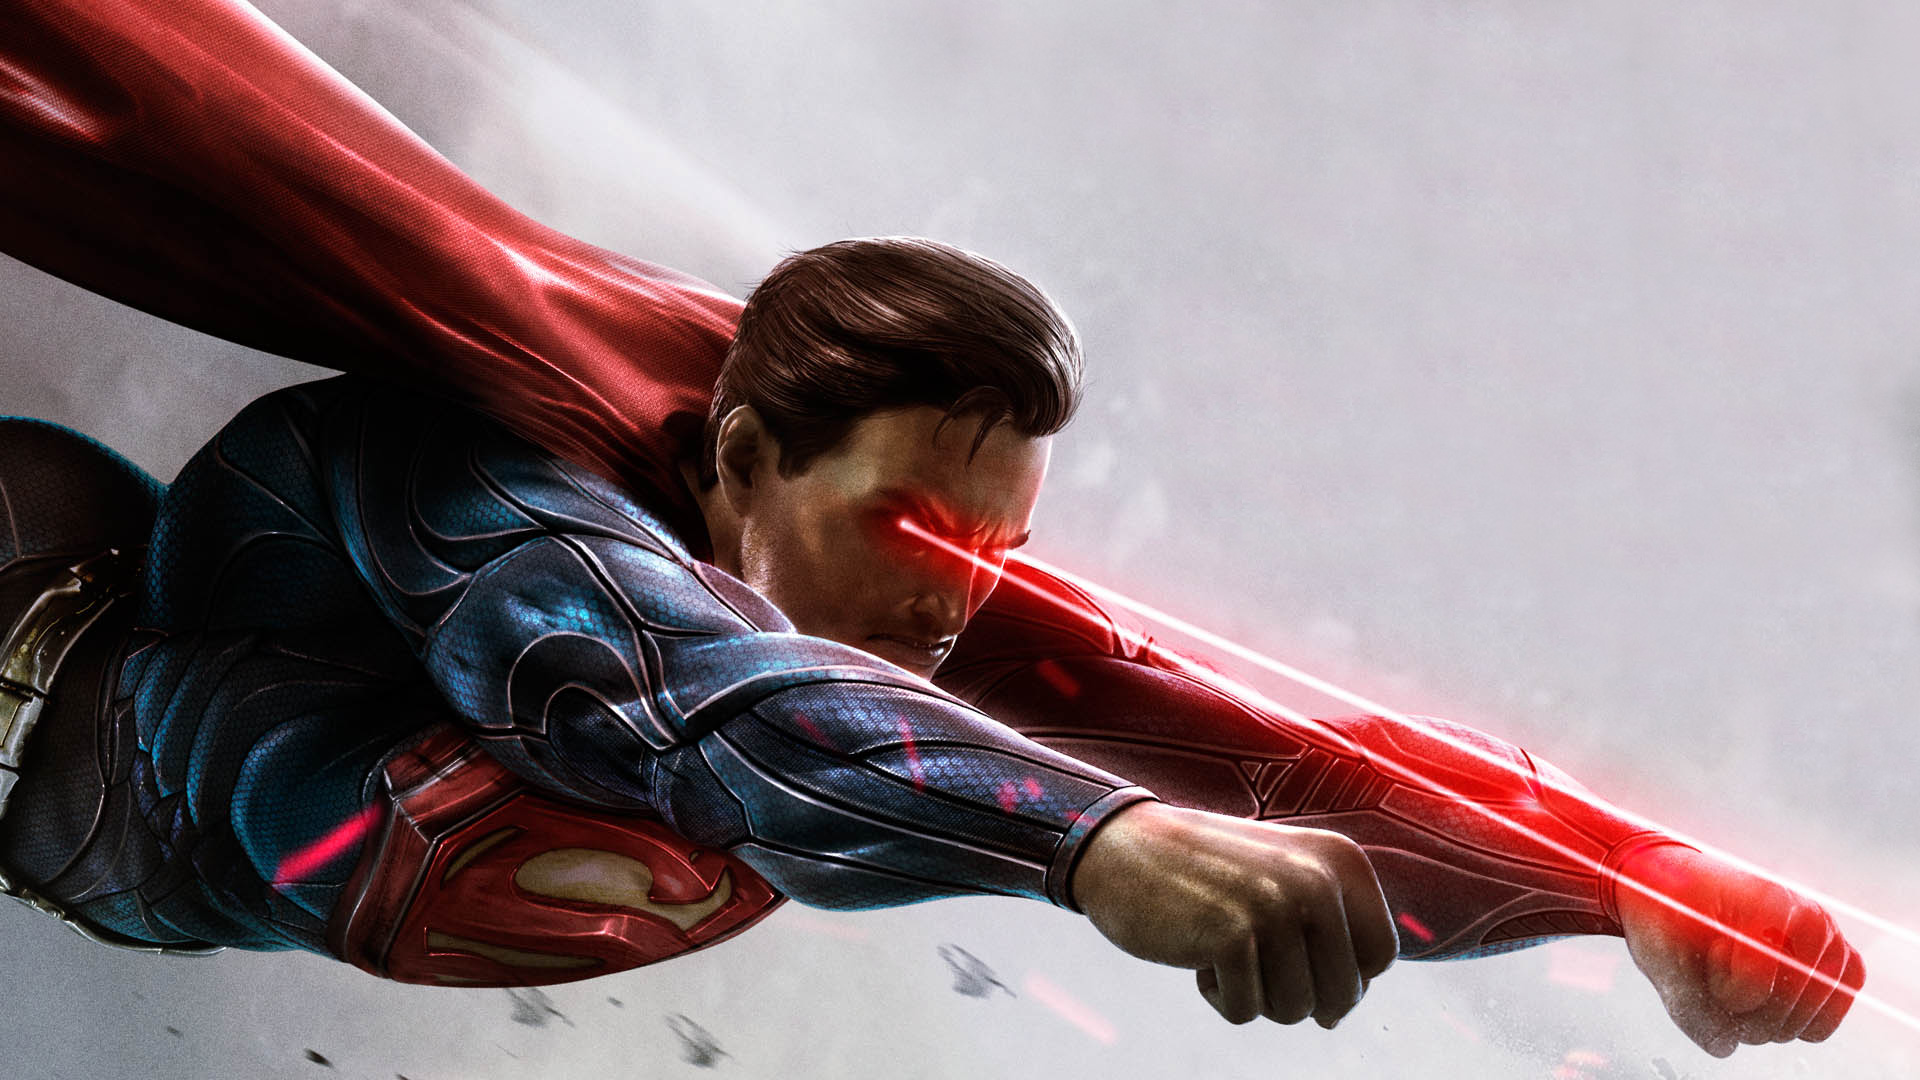 Steam Trading Card - Superman by Limitus on DeviantArt